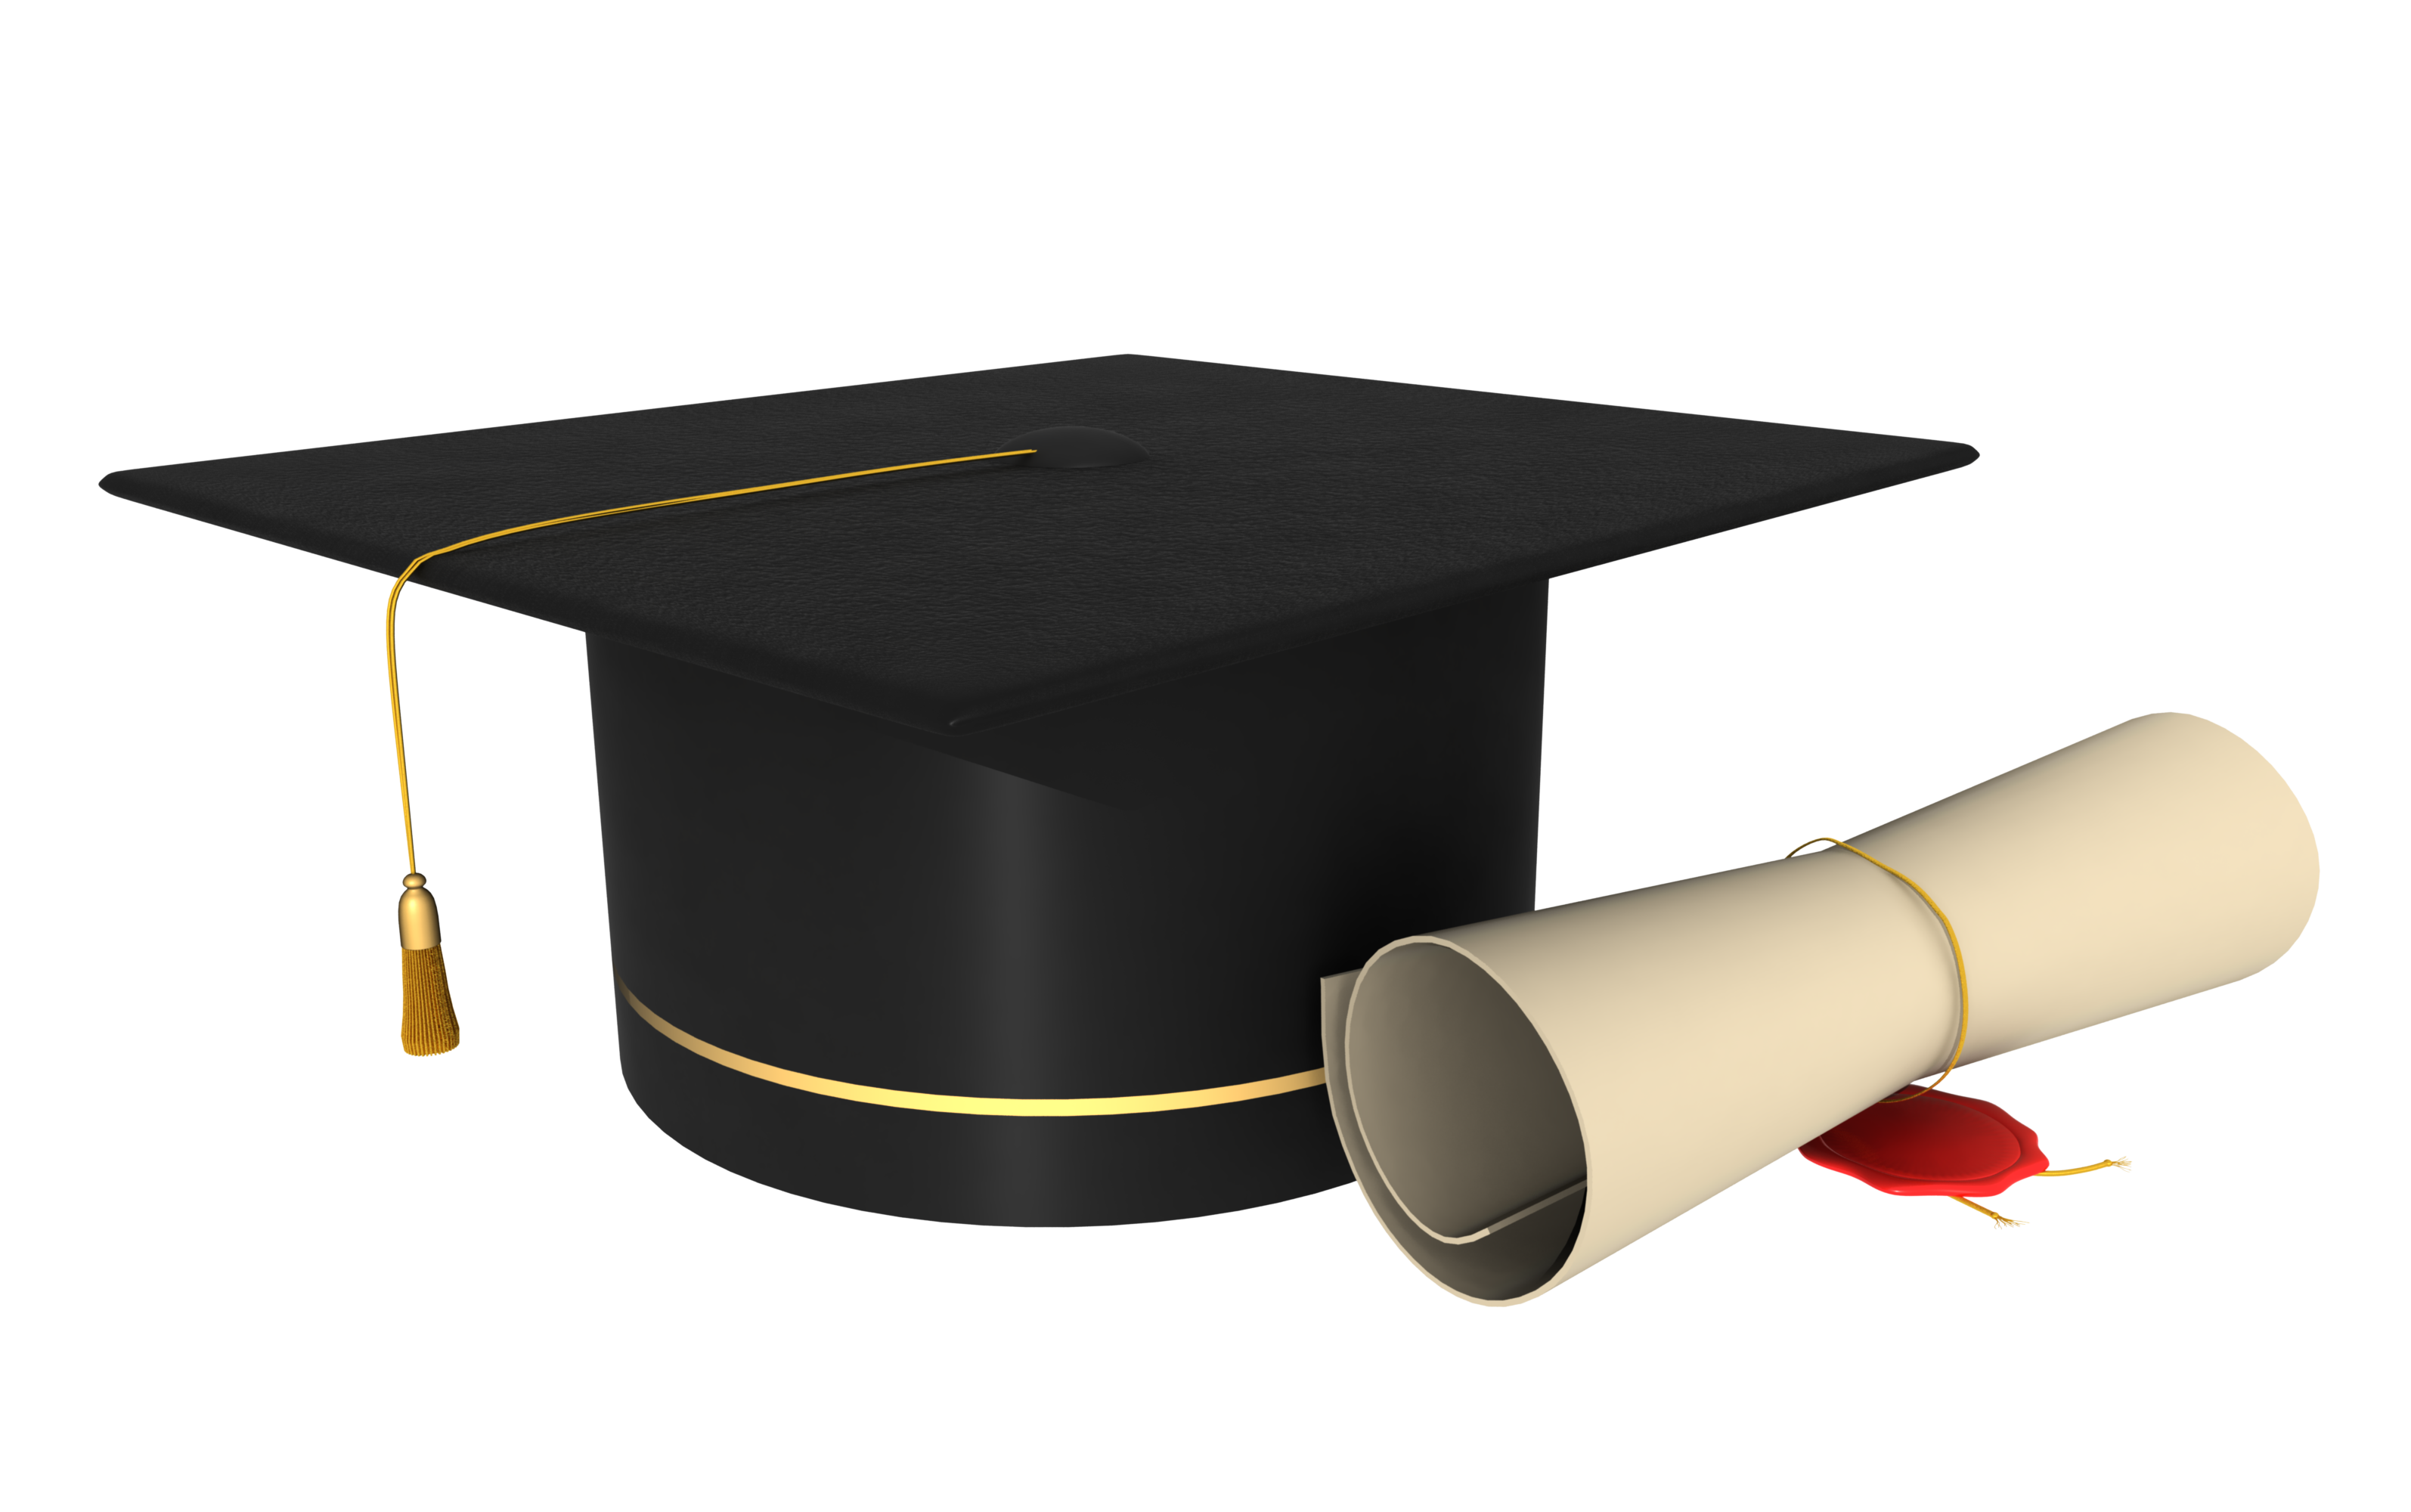 Resolution: 3189 x 2000 | Format: PNG | Keywords: Hat, Cap, Student,  School, Graduation, Mortarboard, Education, University, Object, Degree,  Diploma, PlusPng.com  - Degree Cap PNG